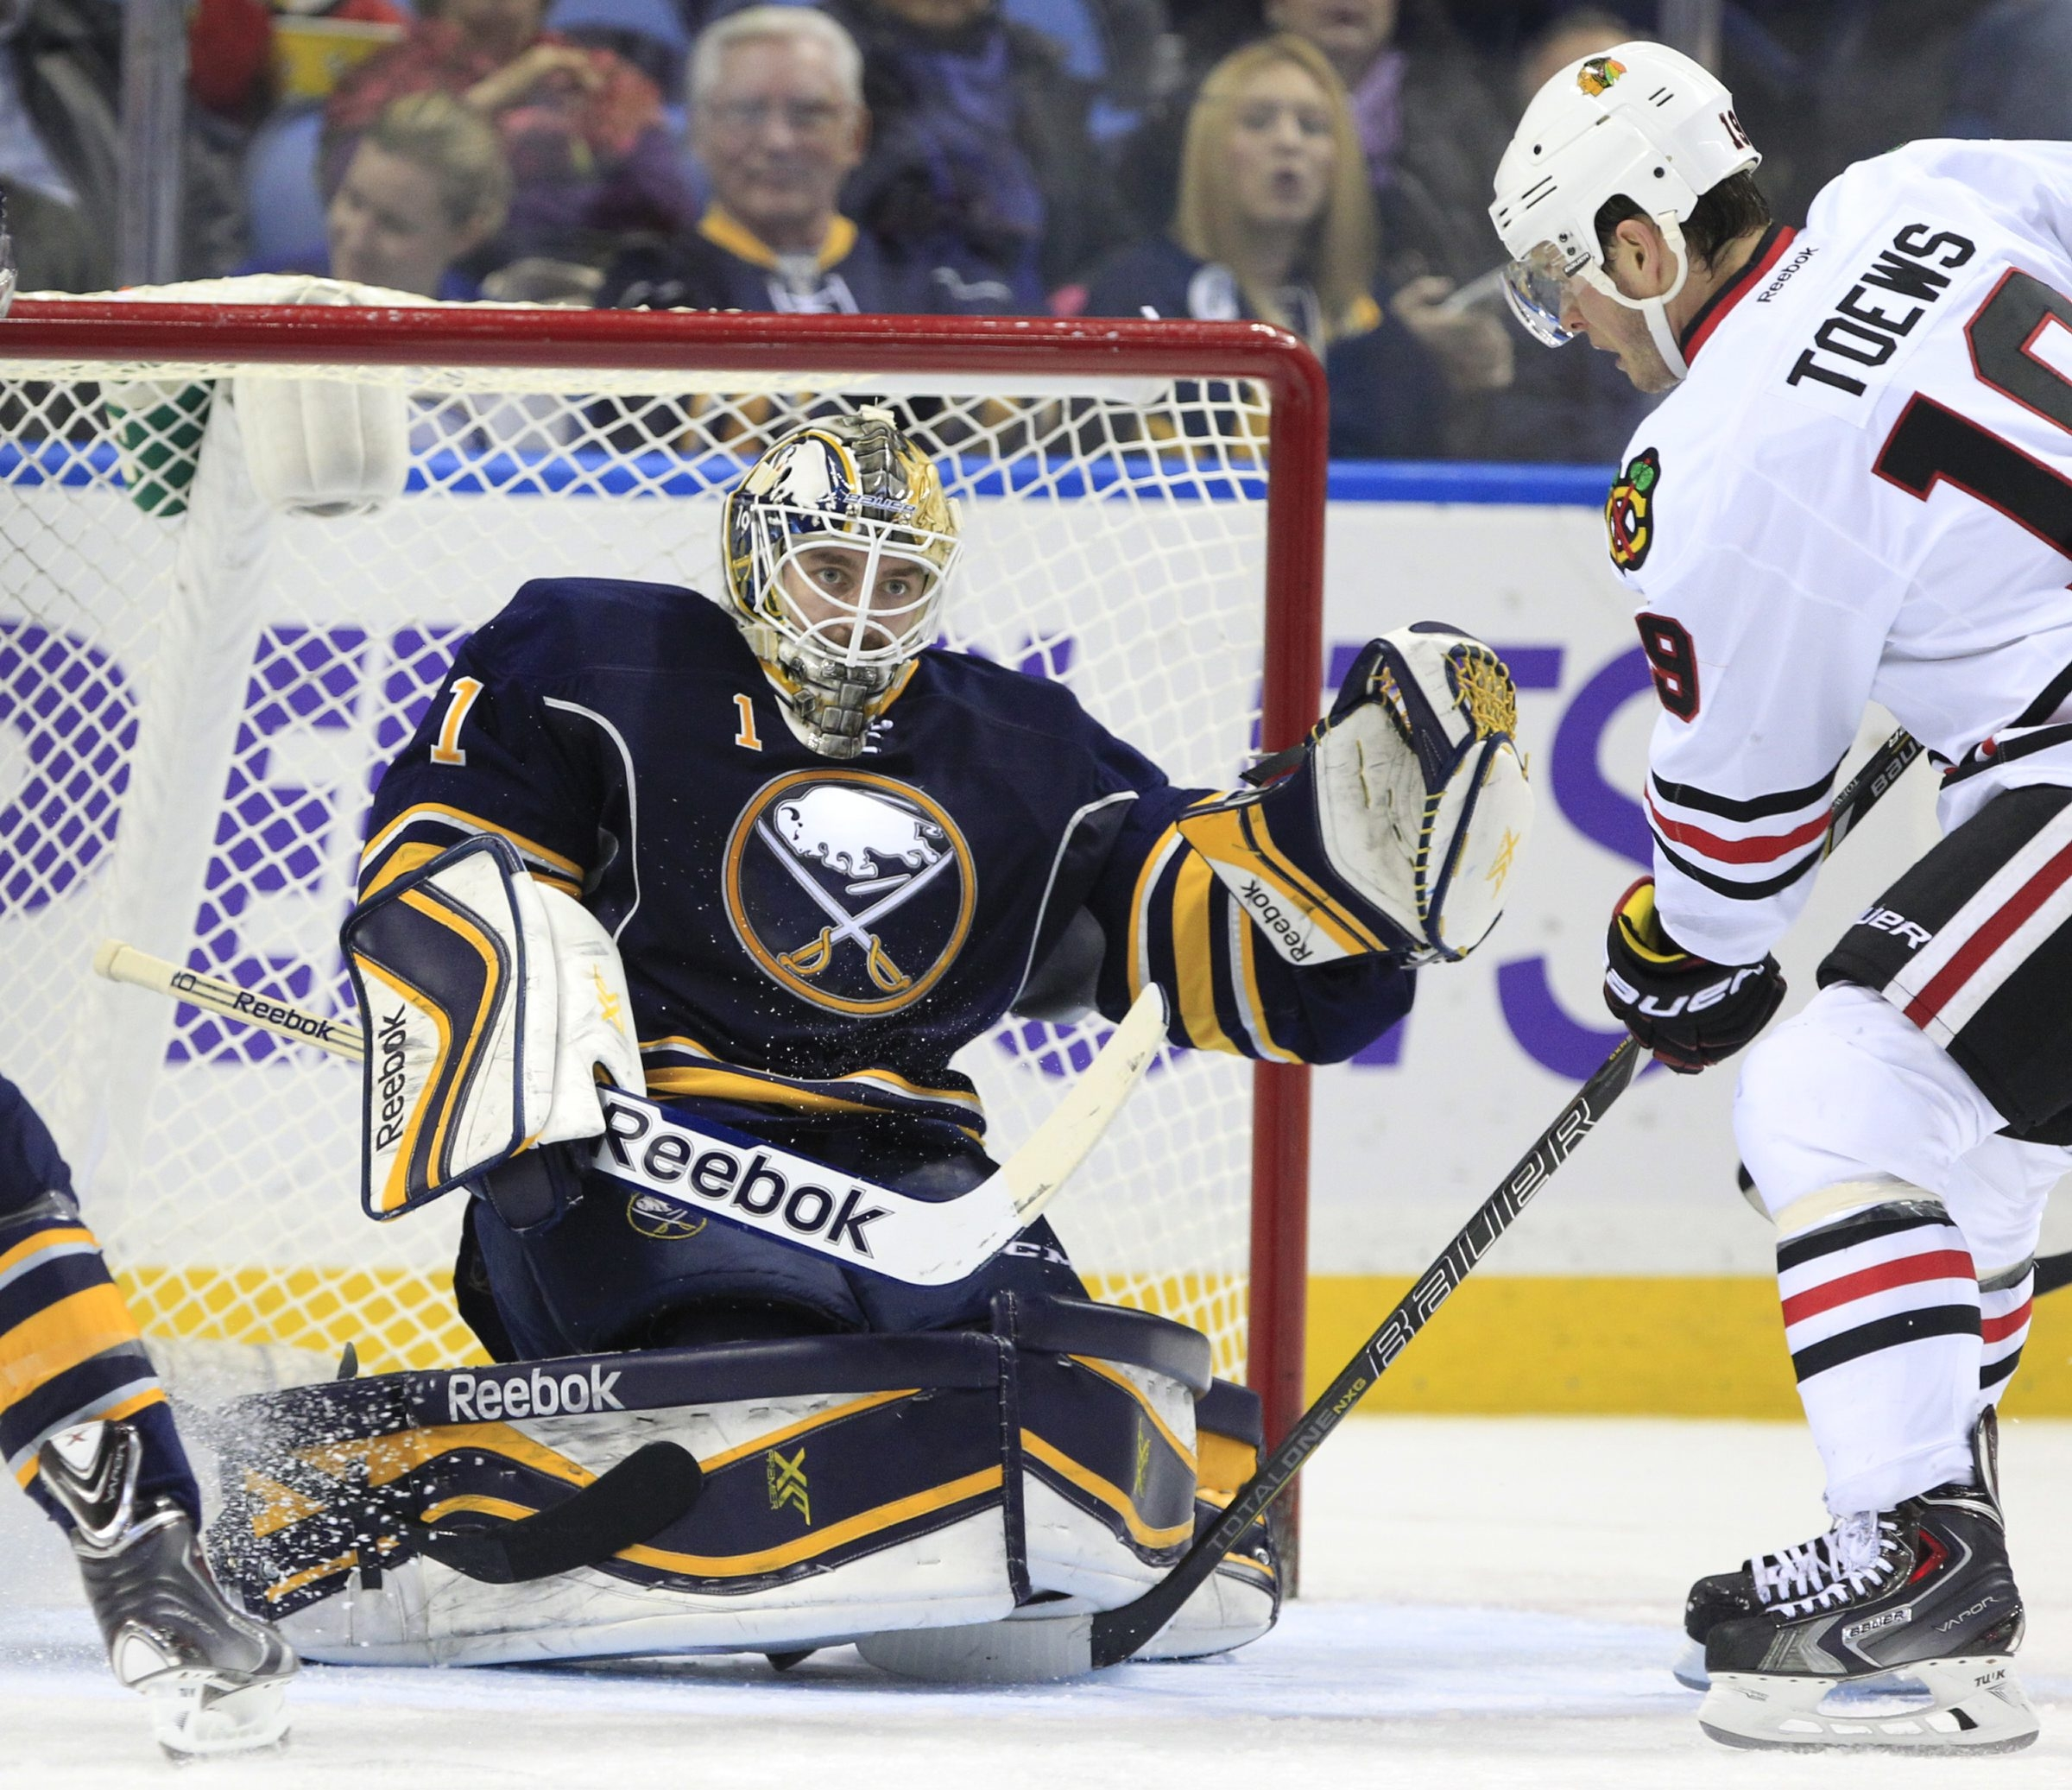 Jhonas Enroth makes one of his 29 saves for the Sabres, but Jonathan Toews got his revenge and scored the game-winner in the third period to lead Chicago to a 2-1 win at First Niagara Center.(Harry Scull Jr./Buffalo News)